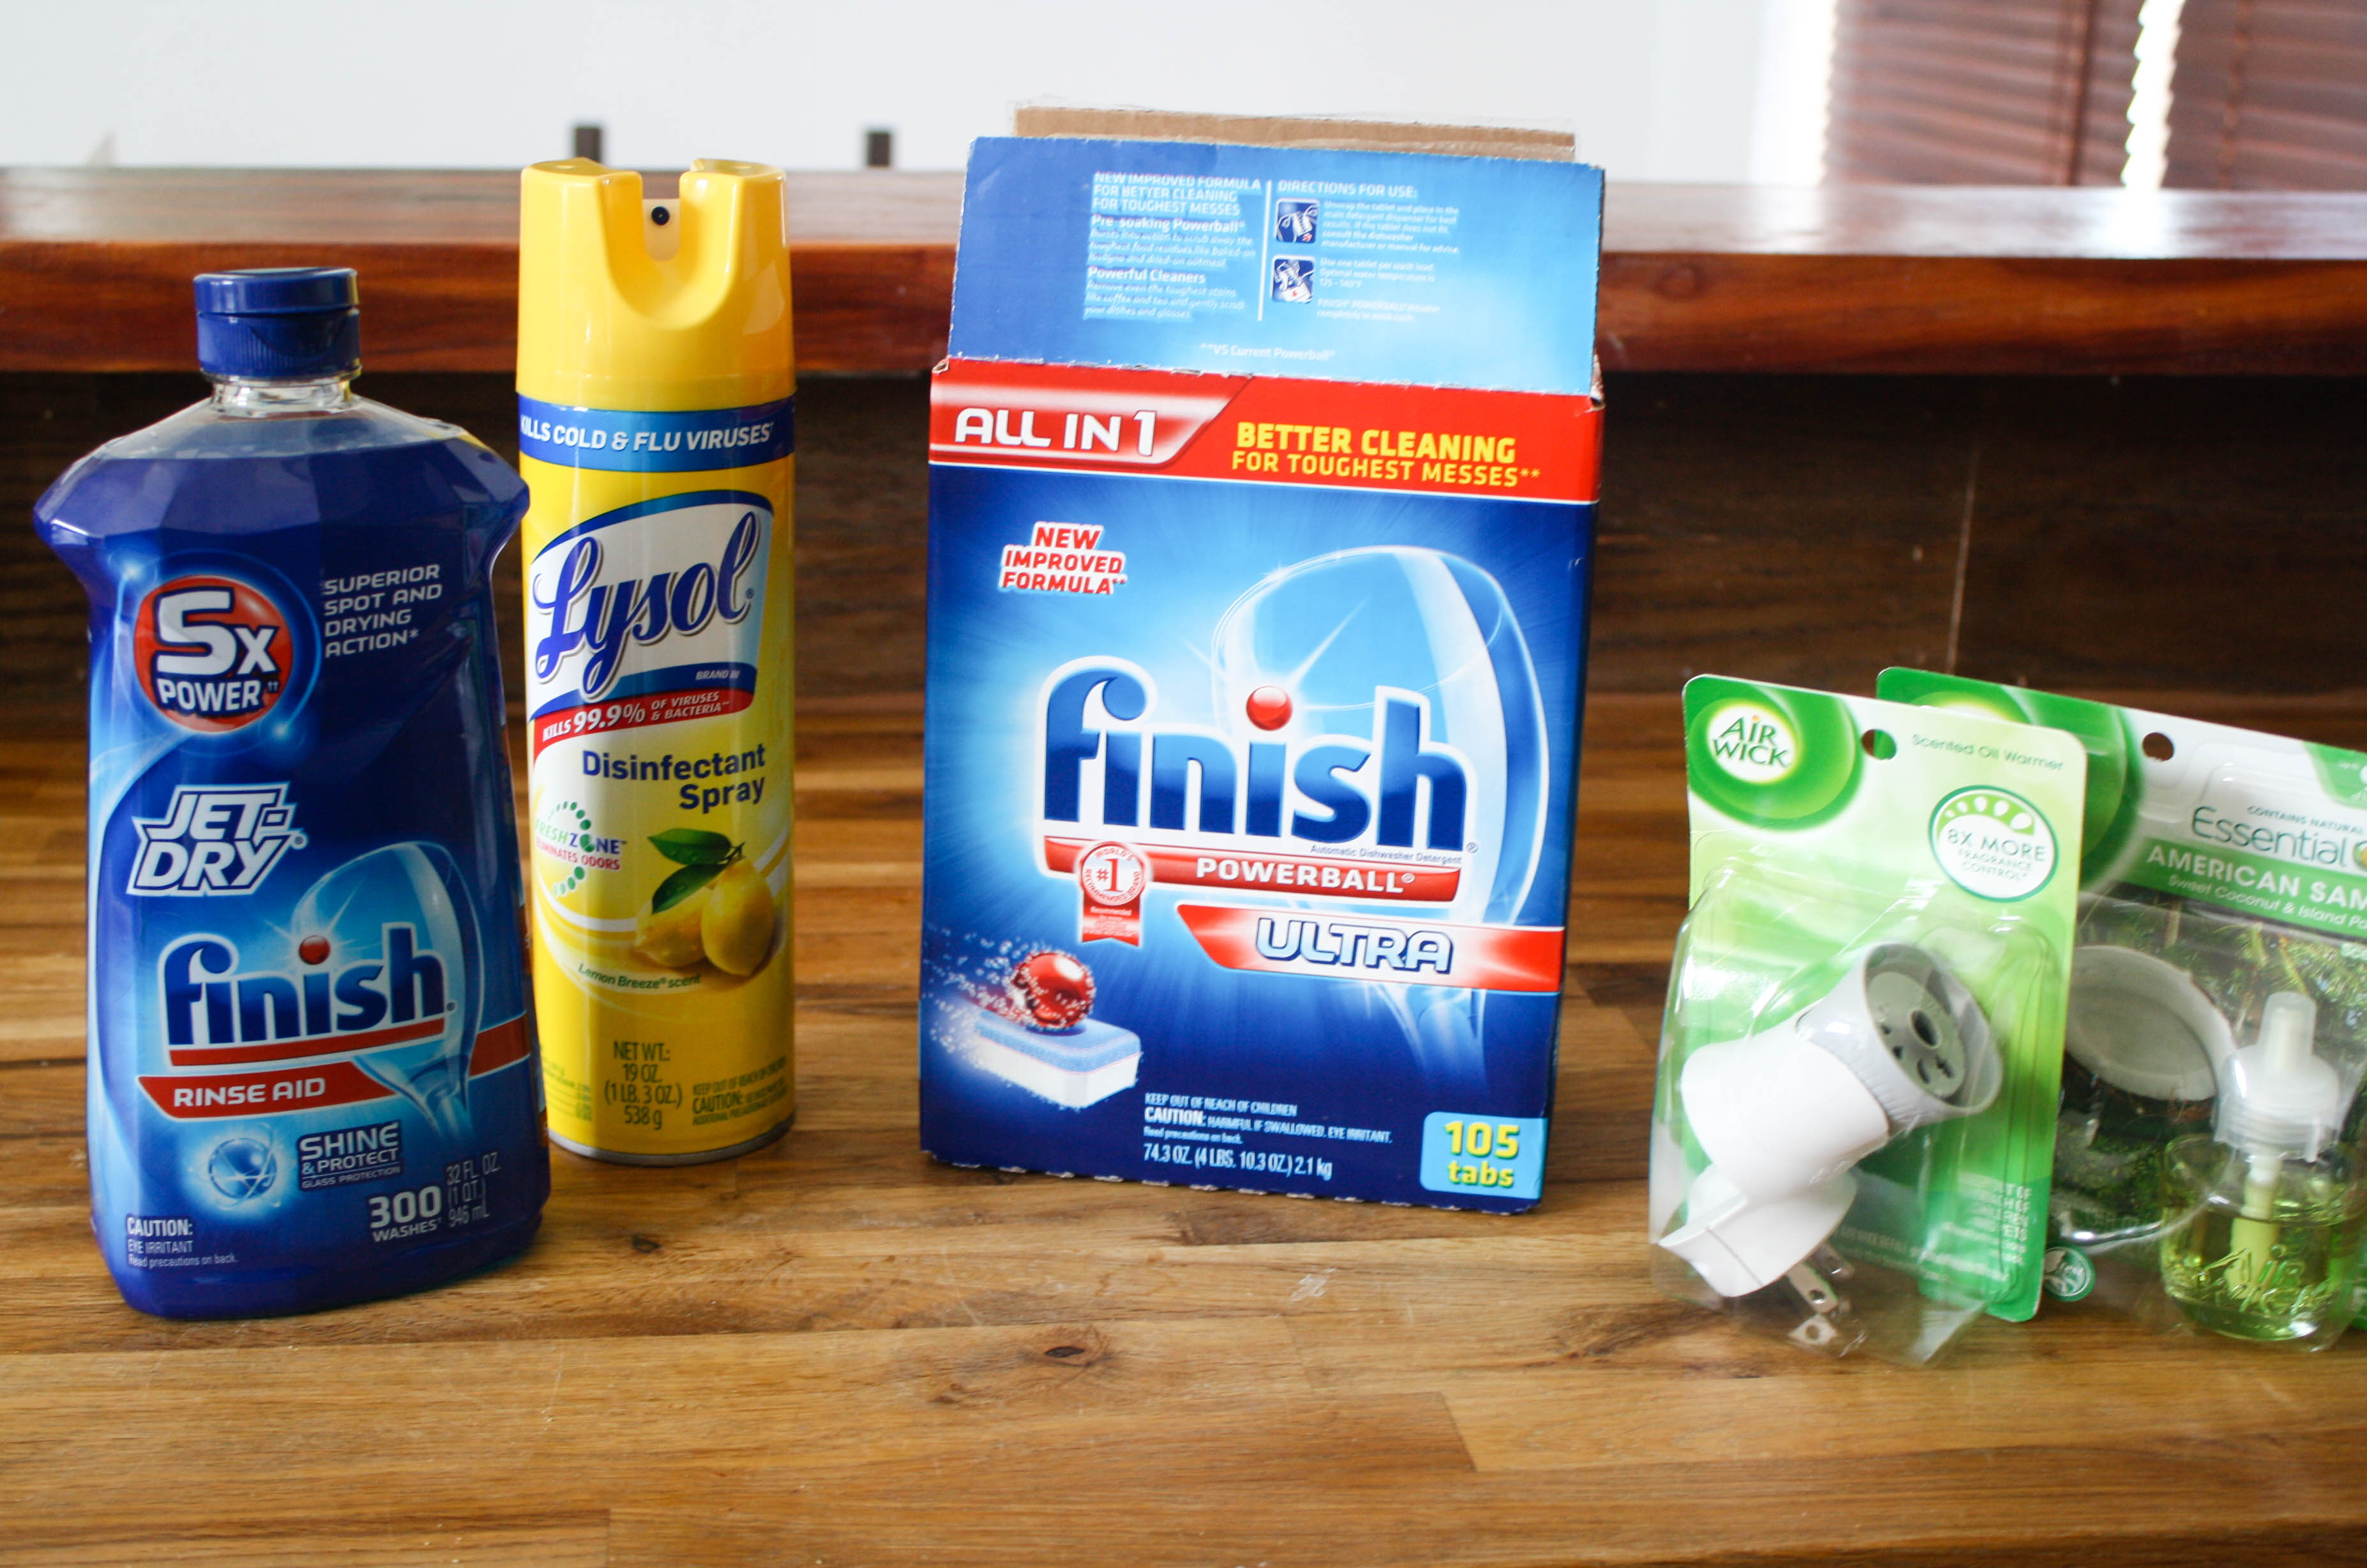 These spots could be dirtier than you think! Here are 5 Areas of Your Kitchen To Deep Clean This Spring